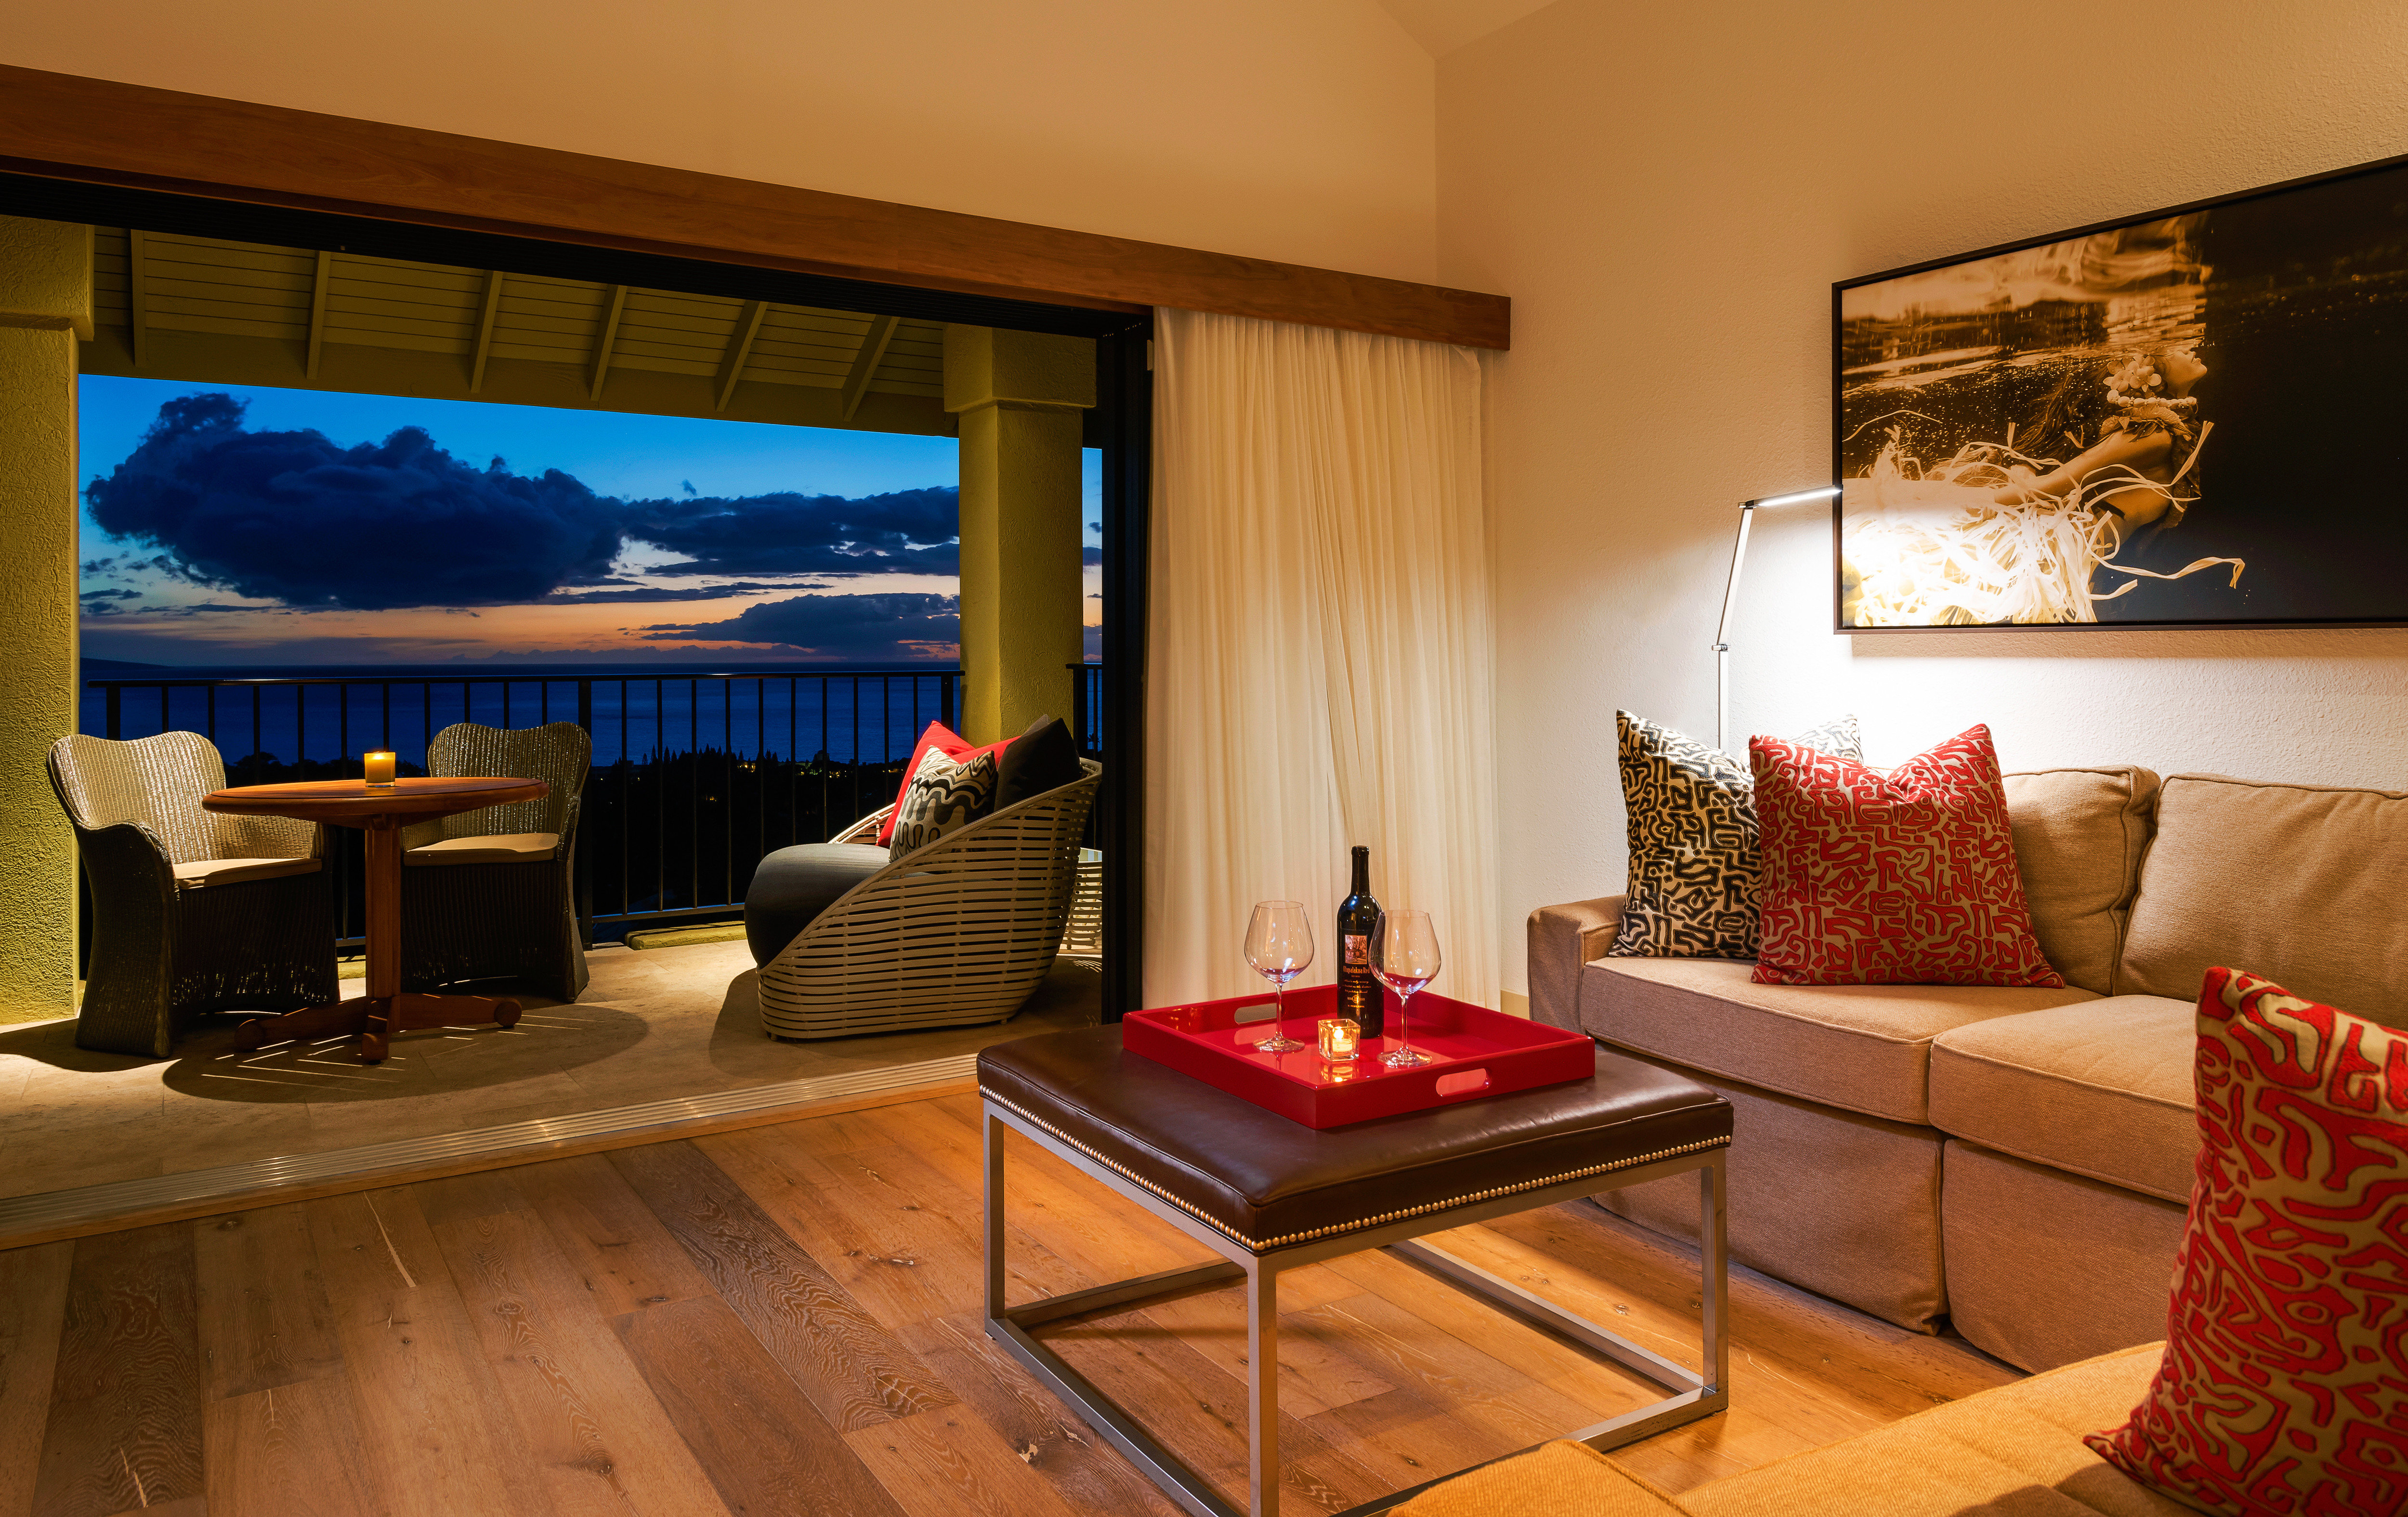 The Worlds Most Beautiful Hotel Rooms with Fireplaces